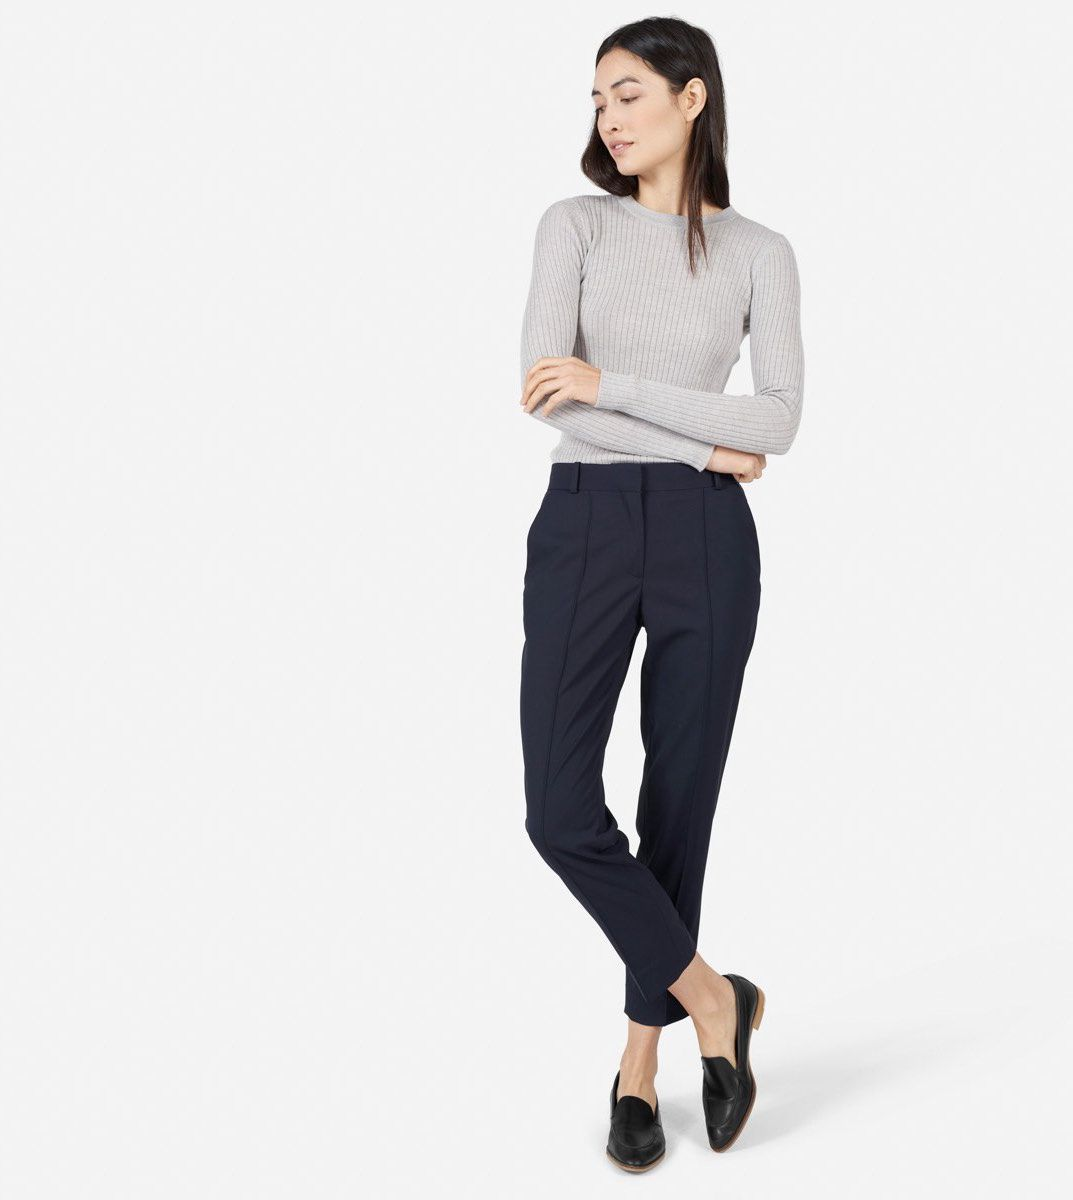 What To Wear To Work From Women Who Have It Figured Out Vox